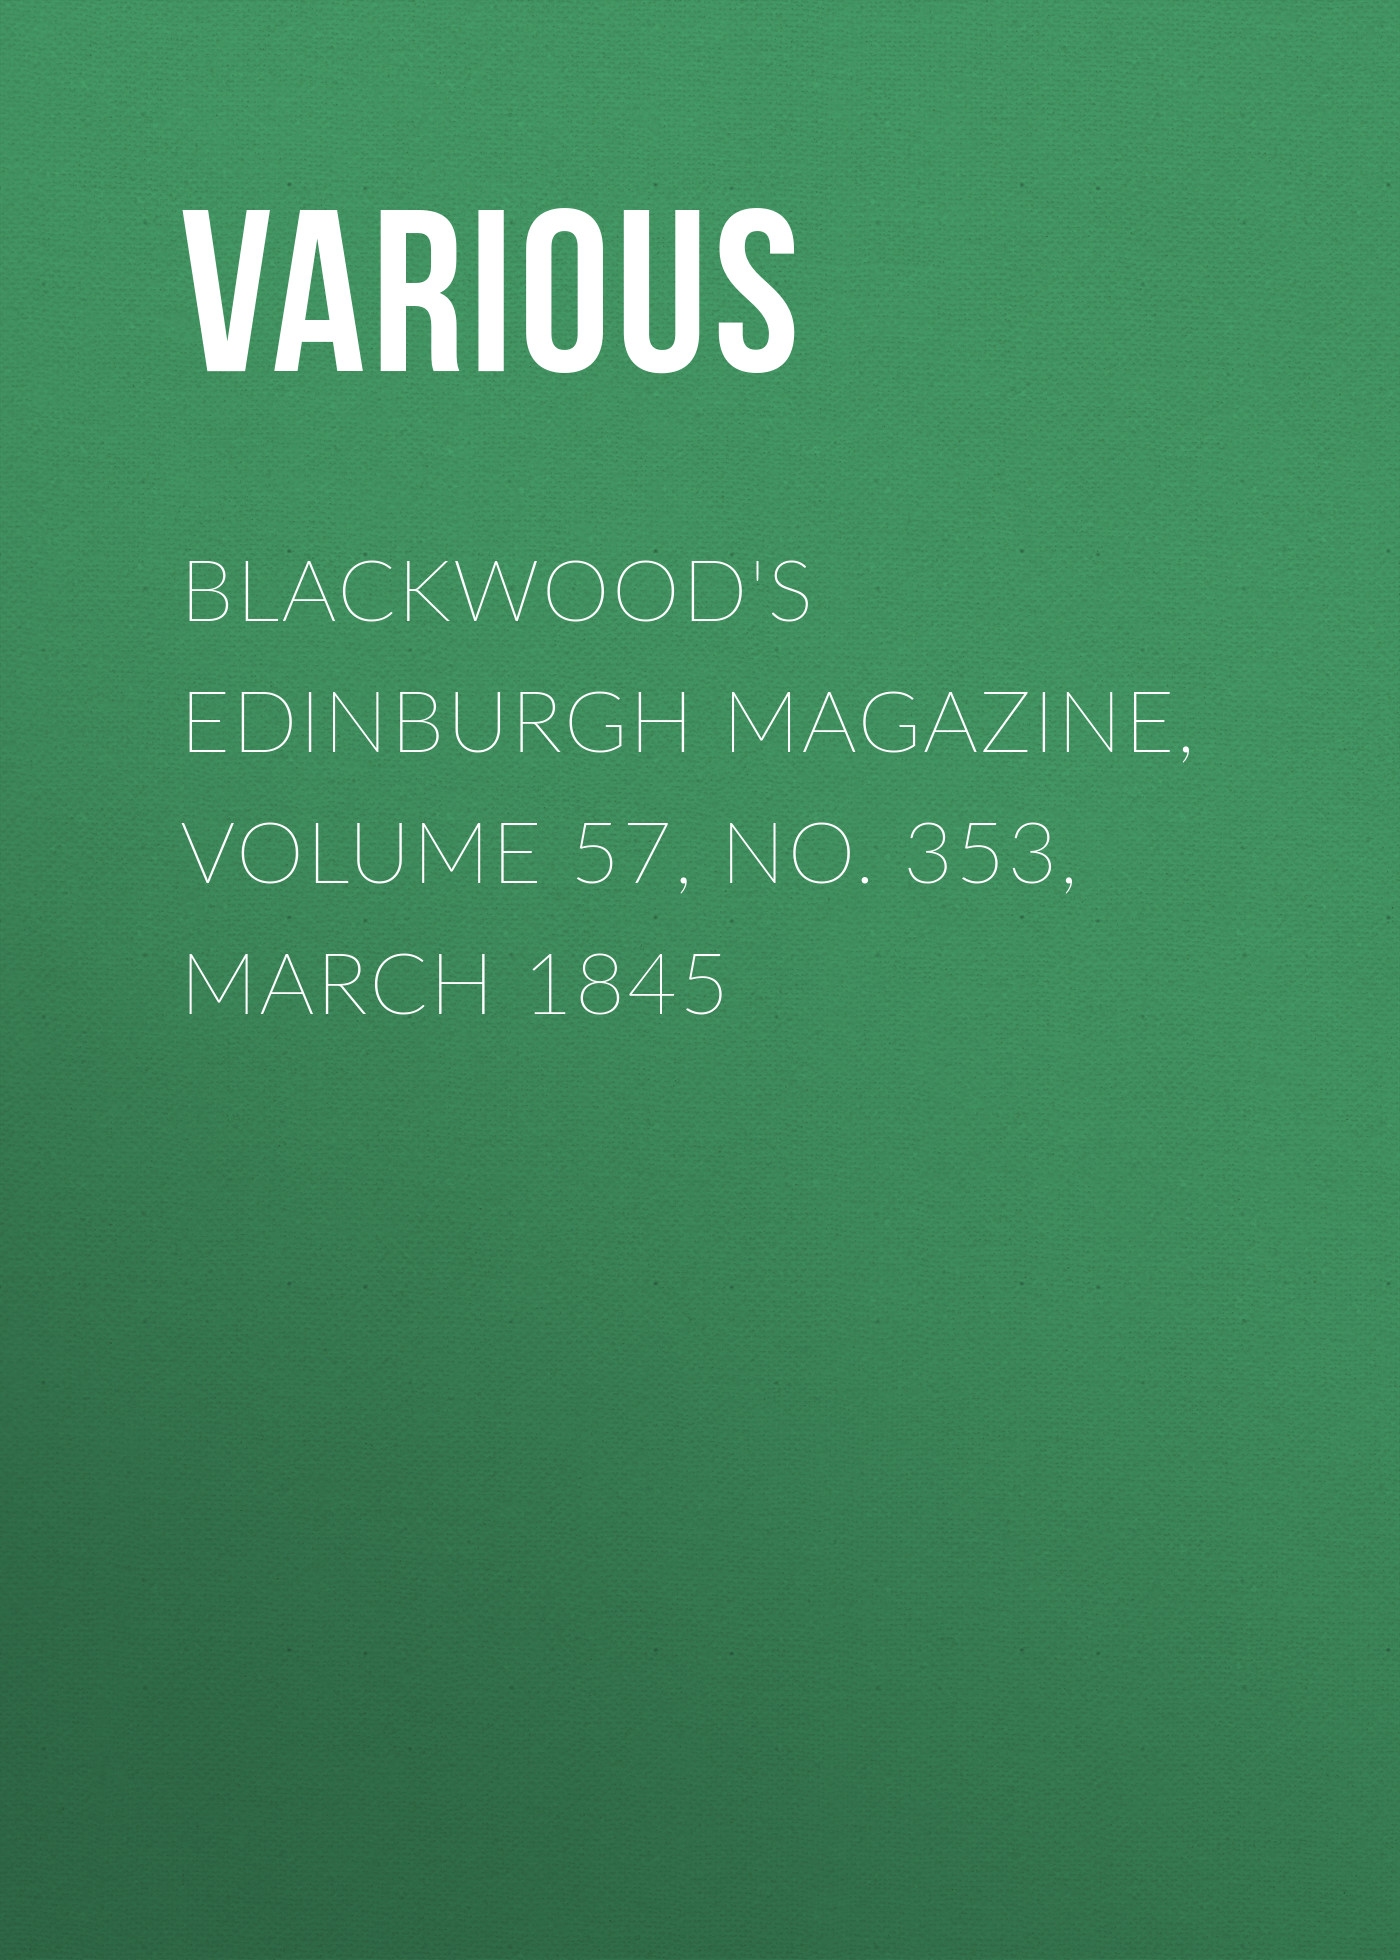 Various Blackwood's Edinburgh Magazine, Volume 57, No. 353, March 1845